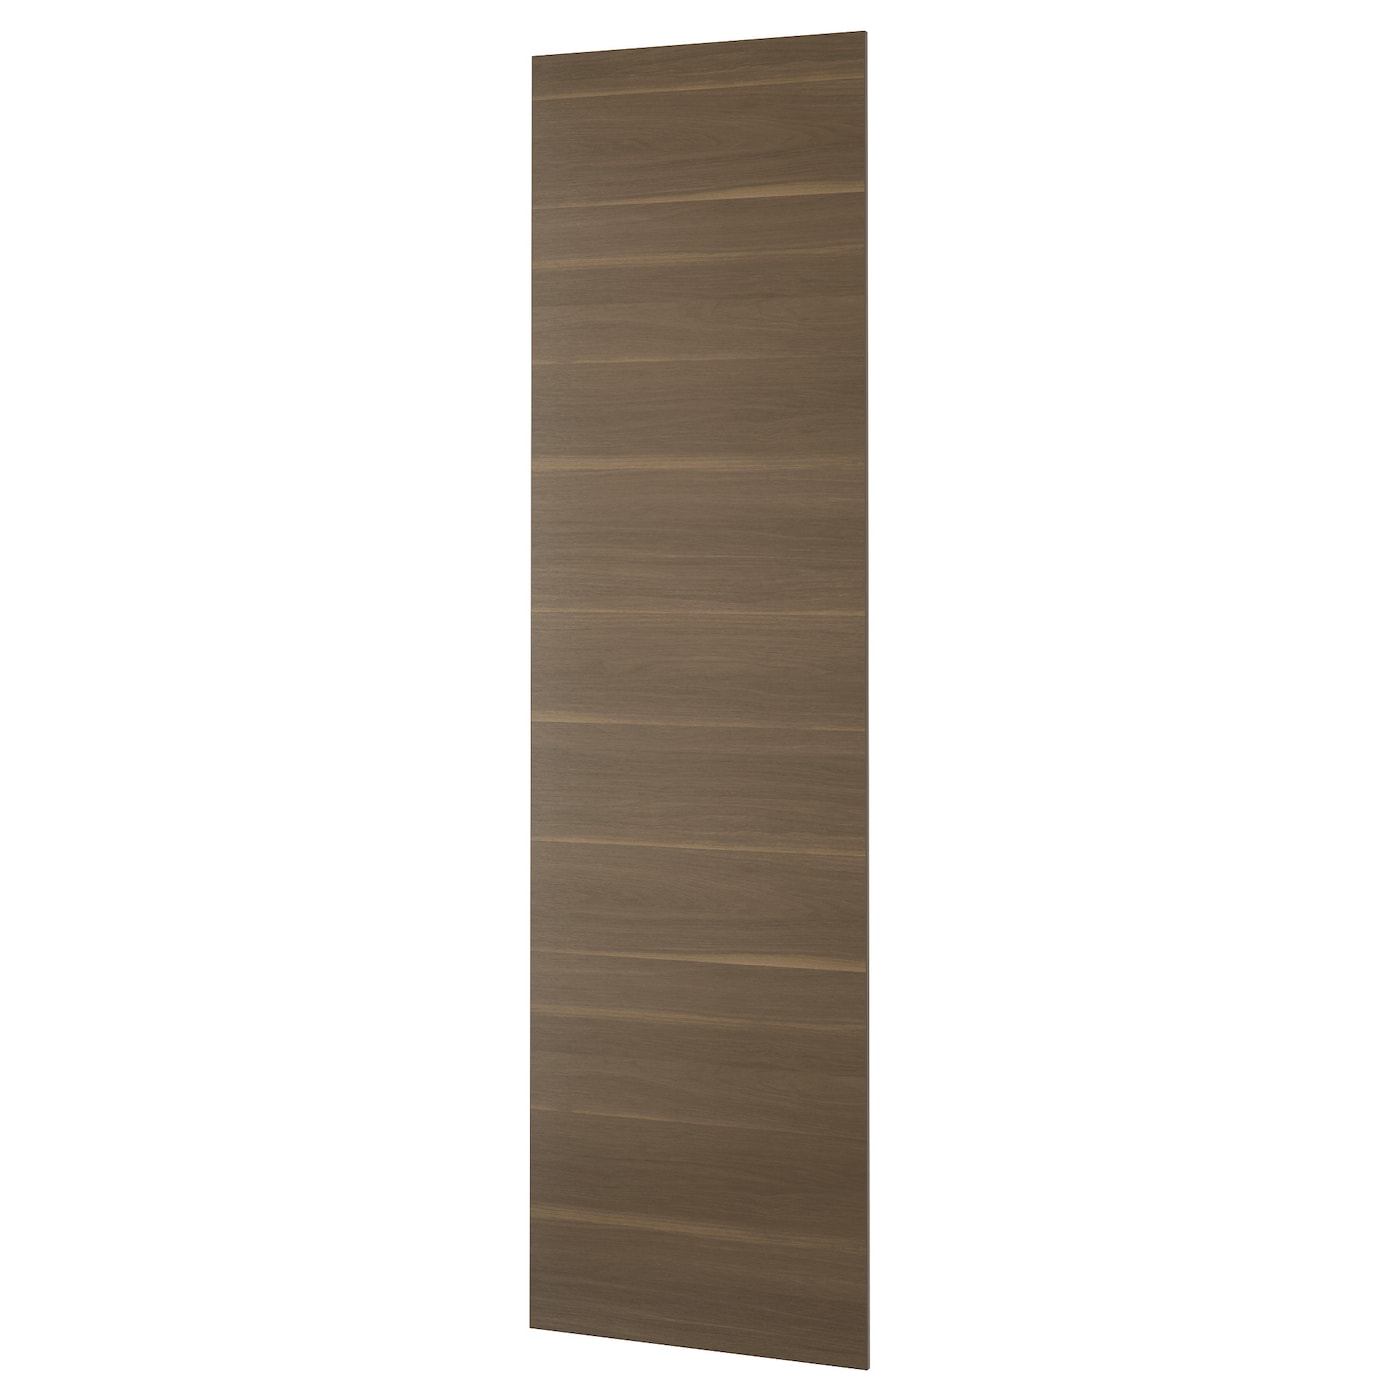 Walnut Mixed Material Ikea Kitchen: VOXTORP Cover Panel Walnut Effect 62x220 Cm